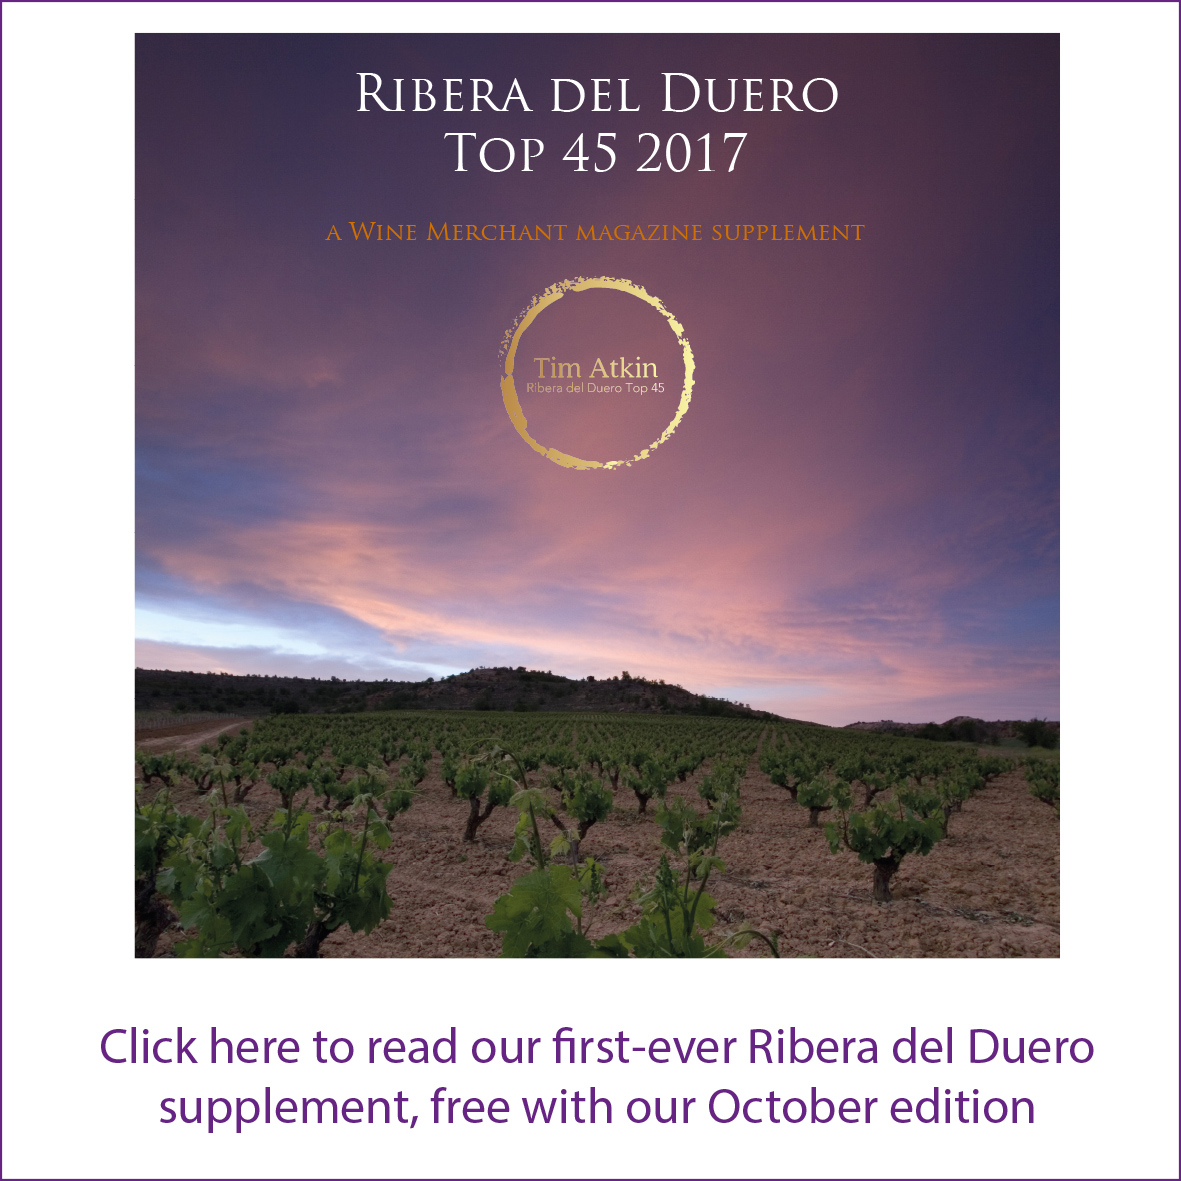 The Wine Merchant Ribera del Duero Supplement 2017